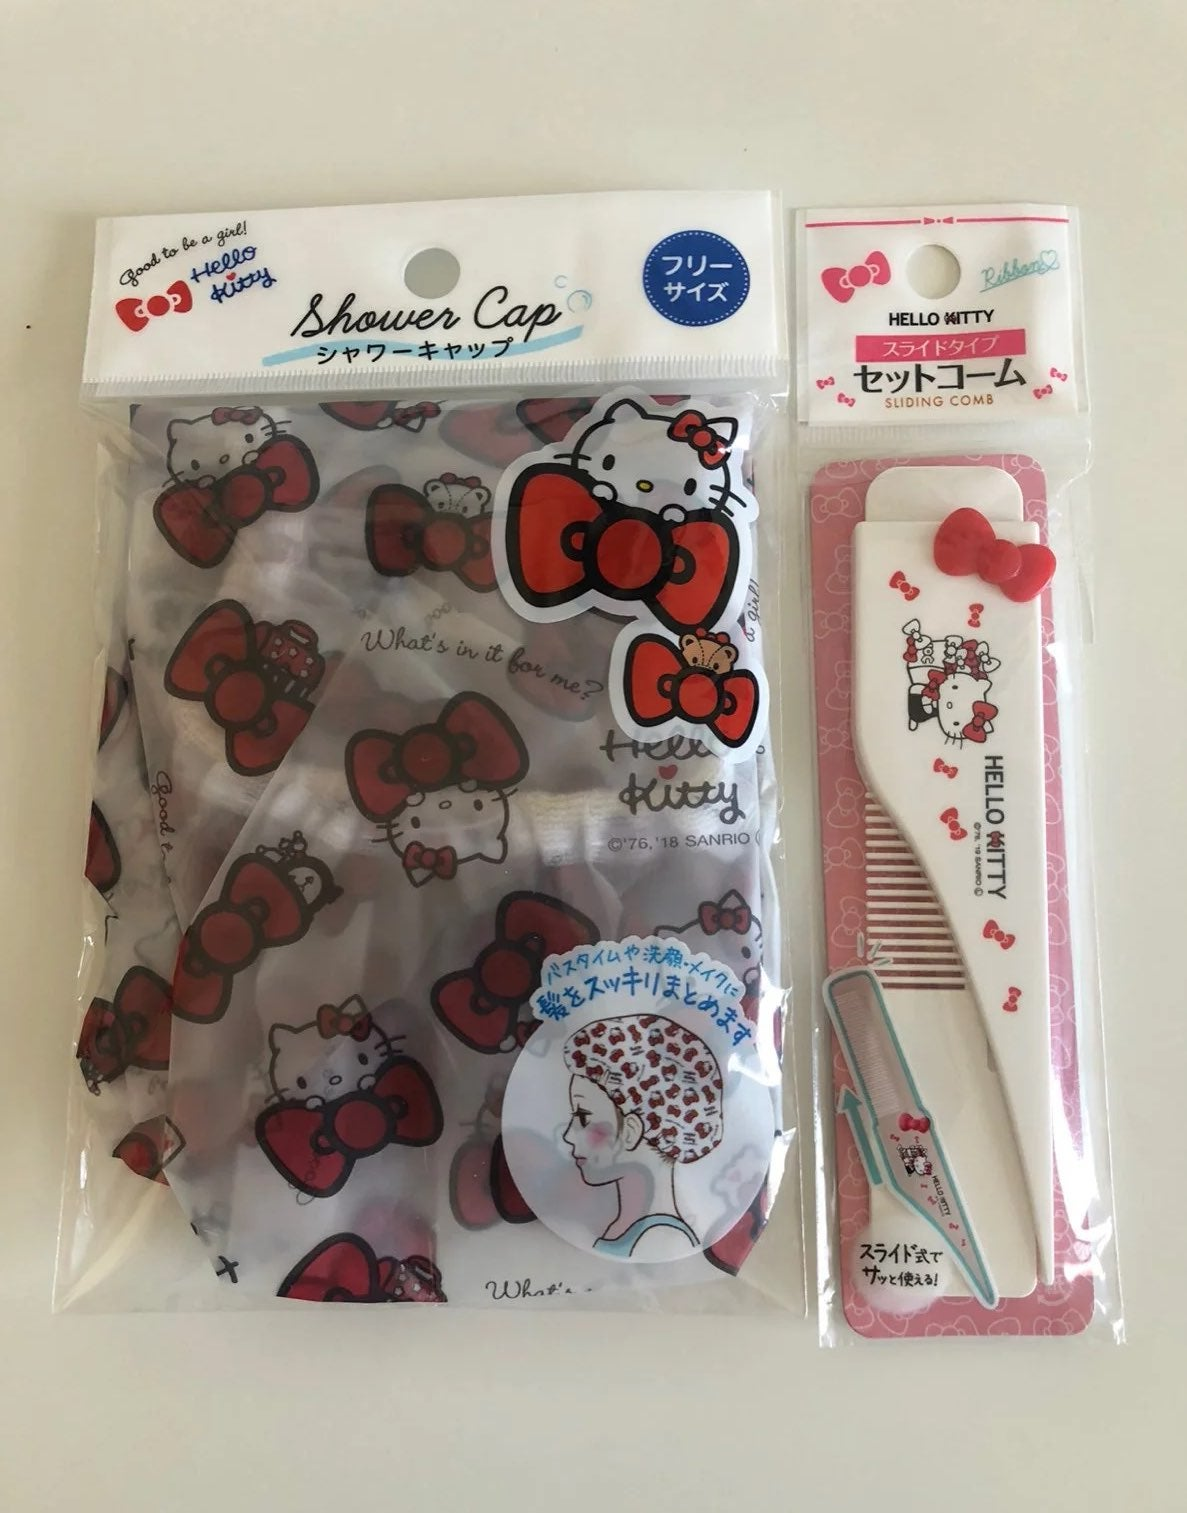 Hello Kitty Shower Cap & Sliding Comb